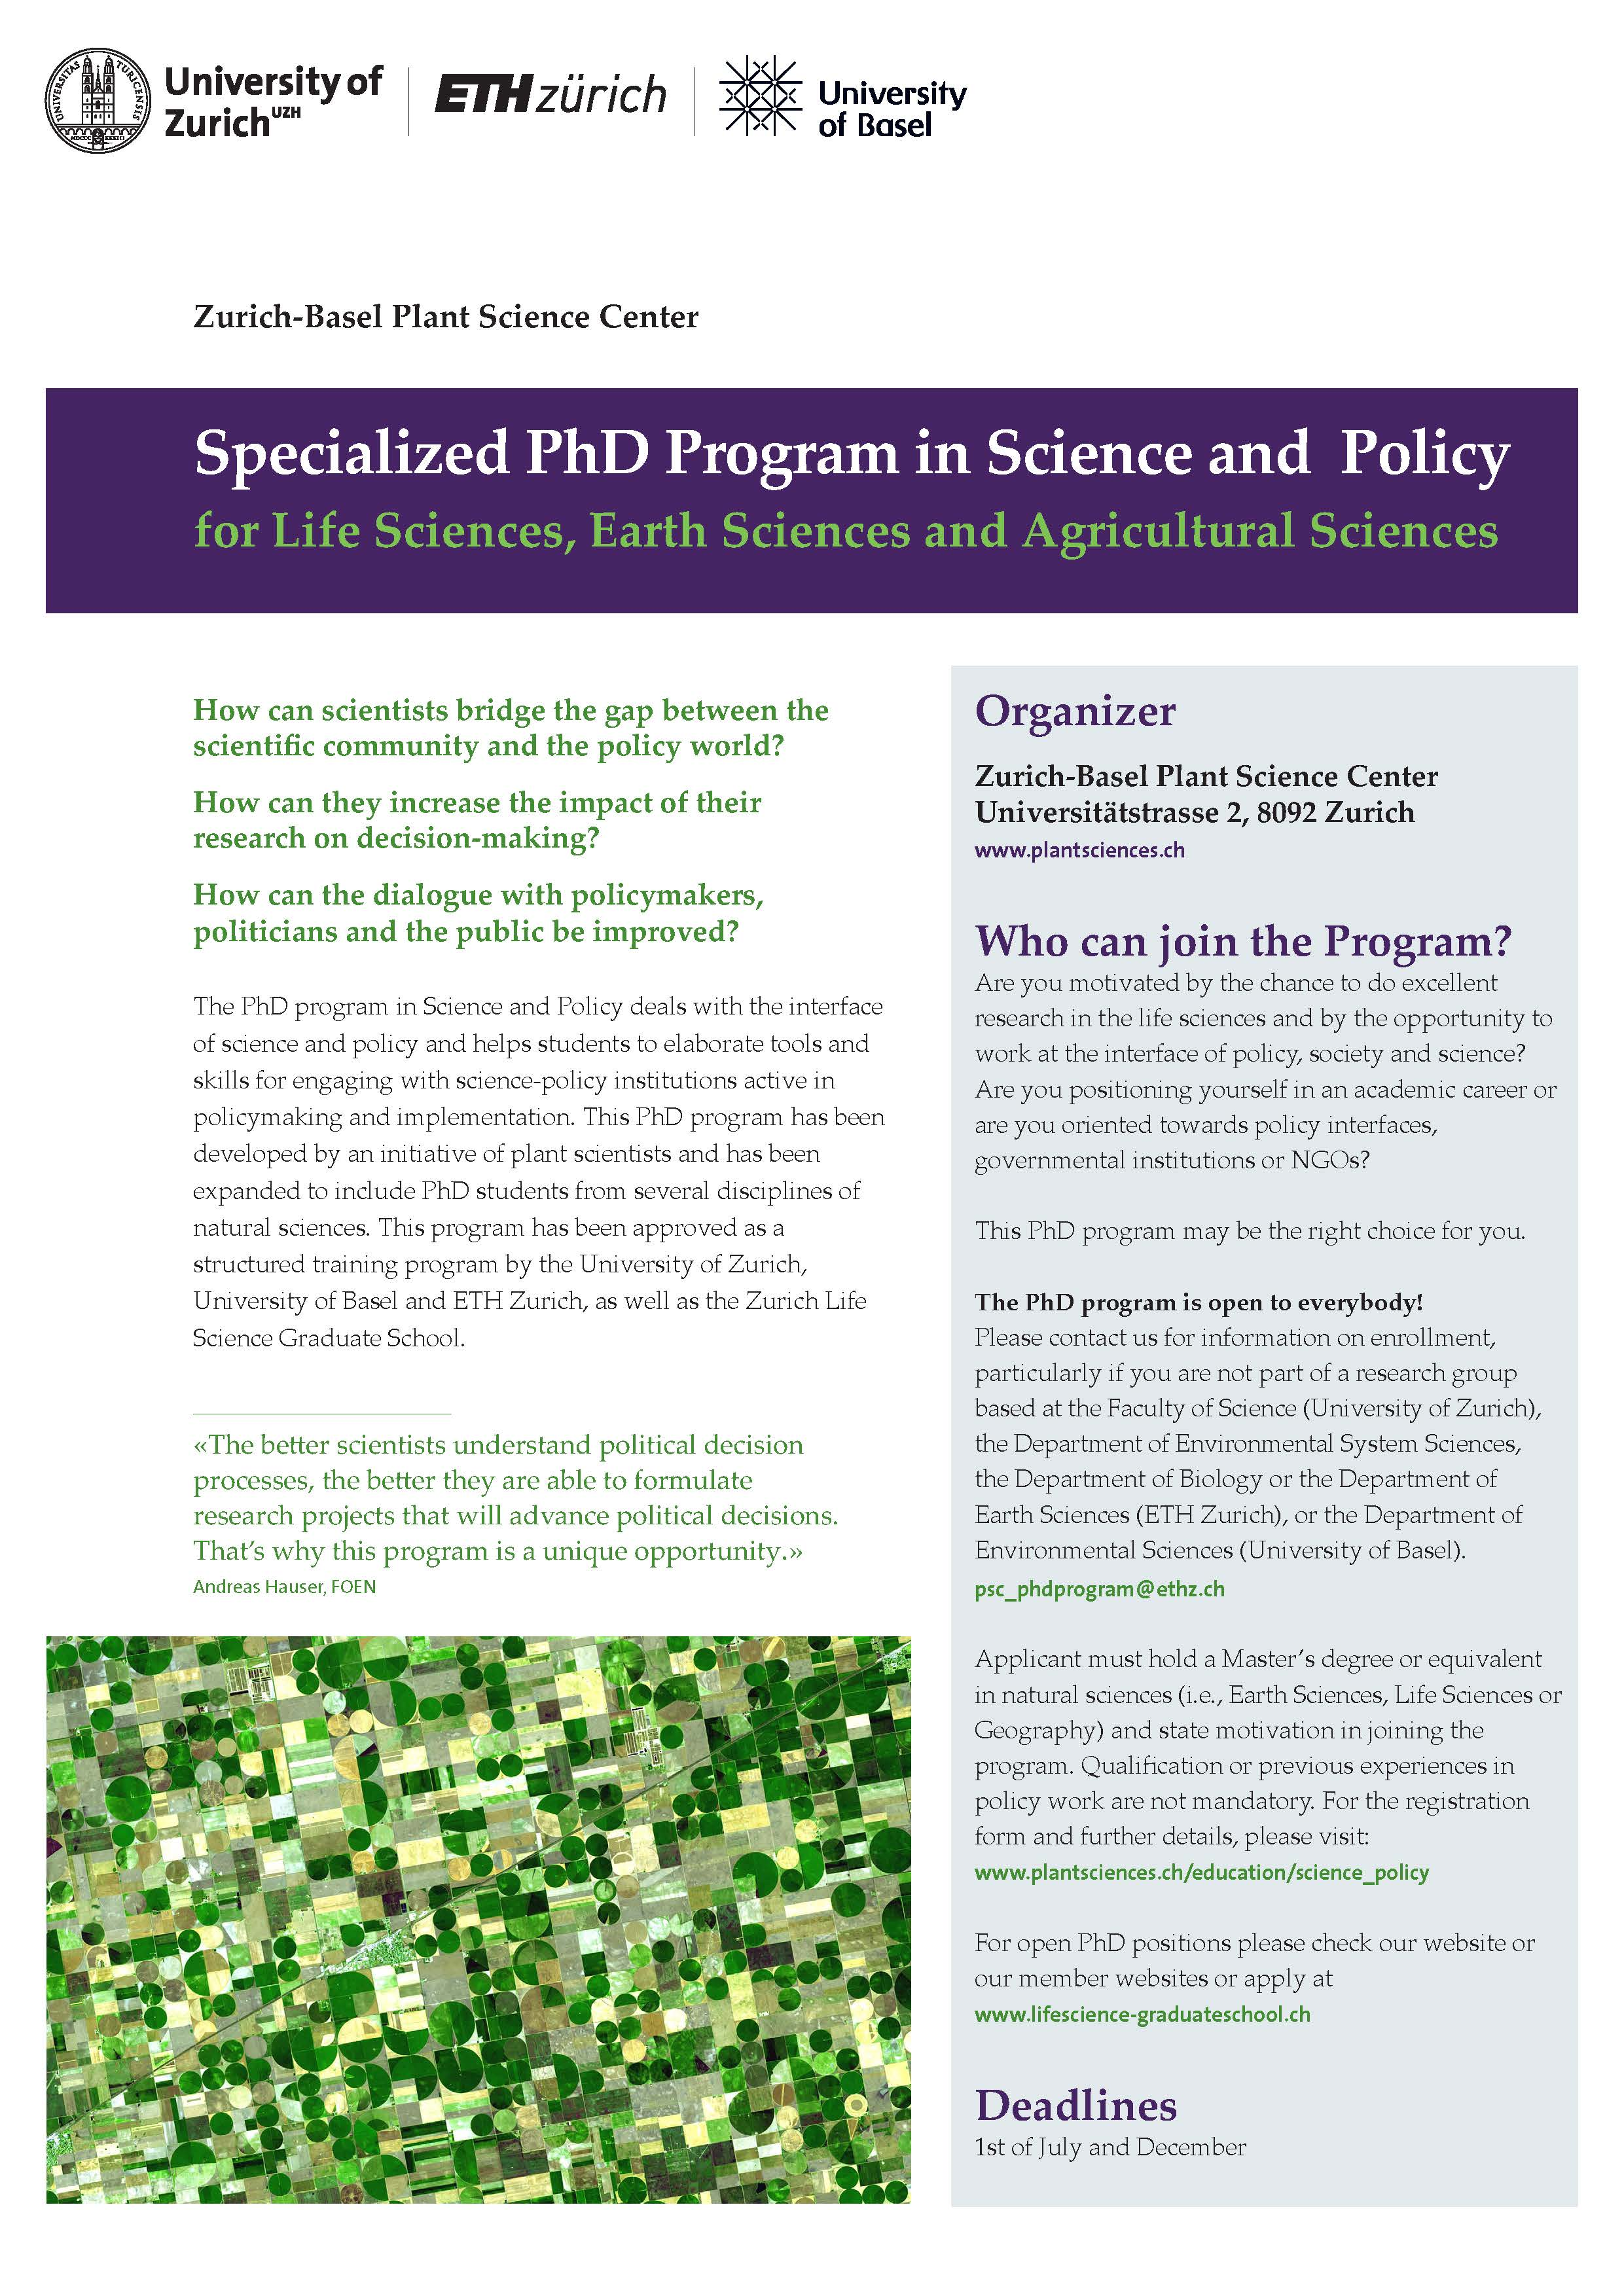 Science and Policy Image